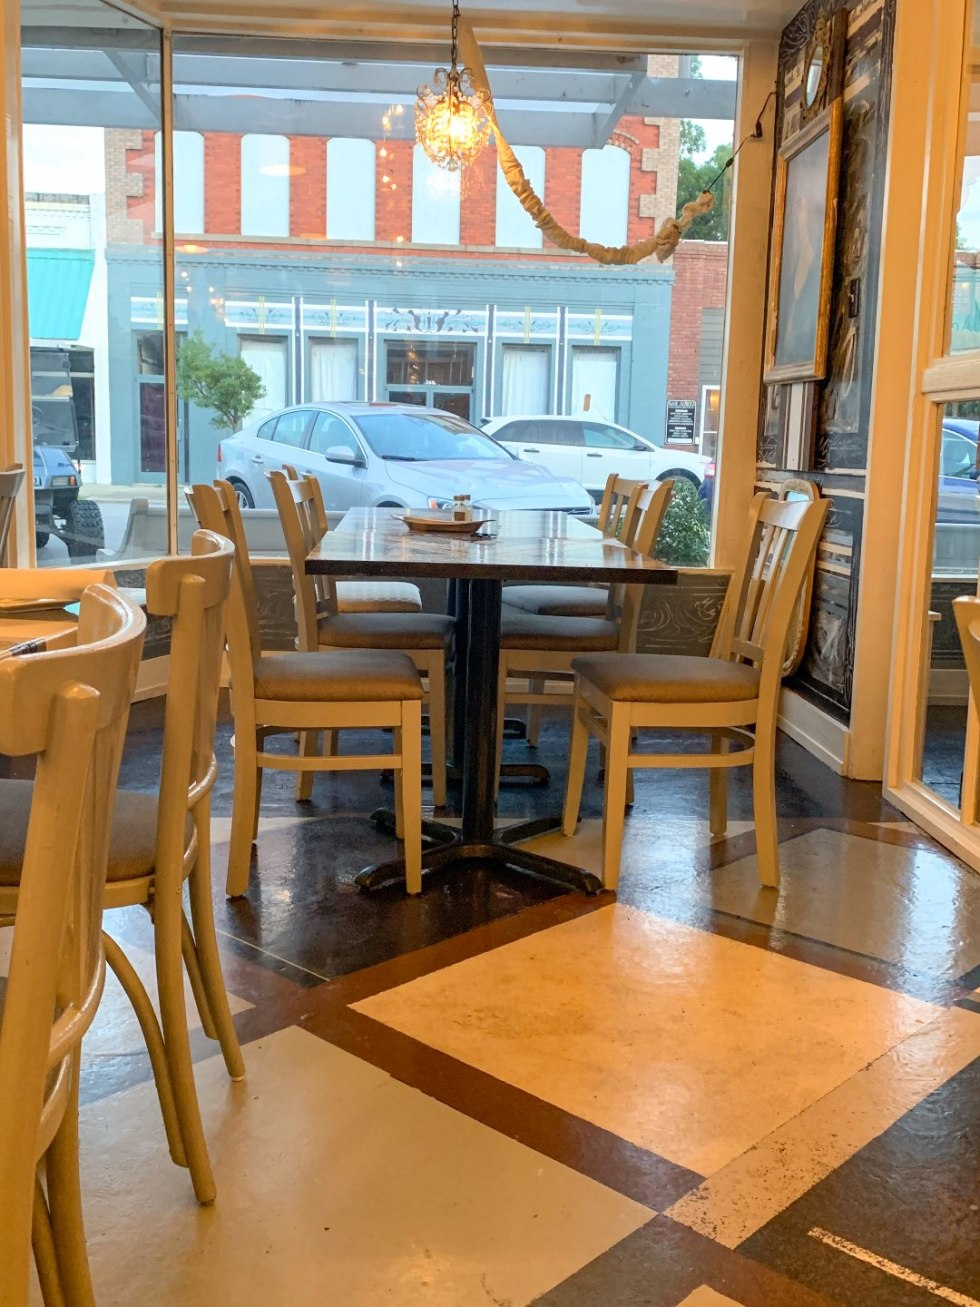 Top 5 Best Destination Restaurants in Eastern NC you Need to Try - I'm Fixin' To - @mbg0112 | Top 5 Best Destination Restaurants in Eastern NC you Need to Try by popular North Carolina blog, I'm Fixin' To: image of table and chairs at Spoon River.